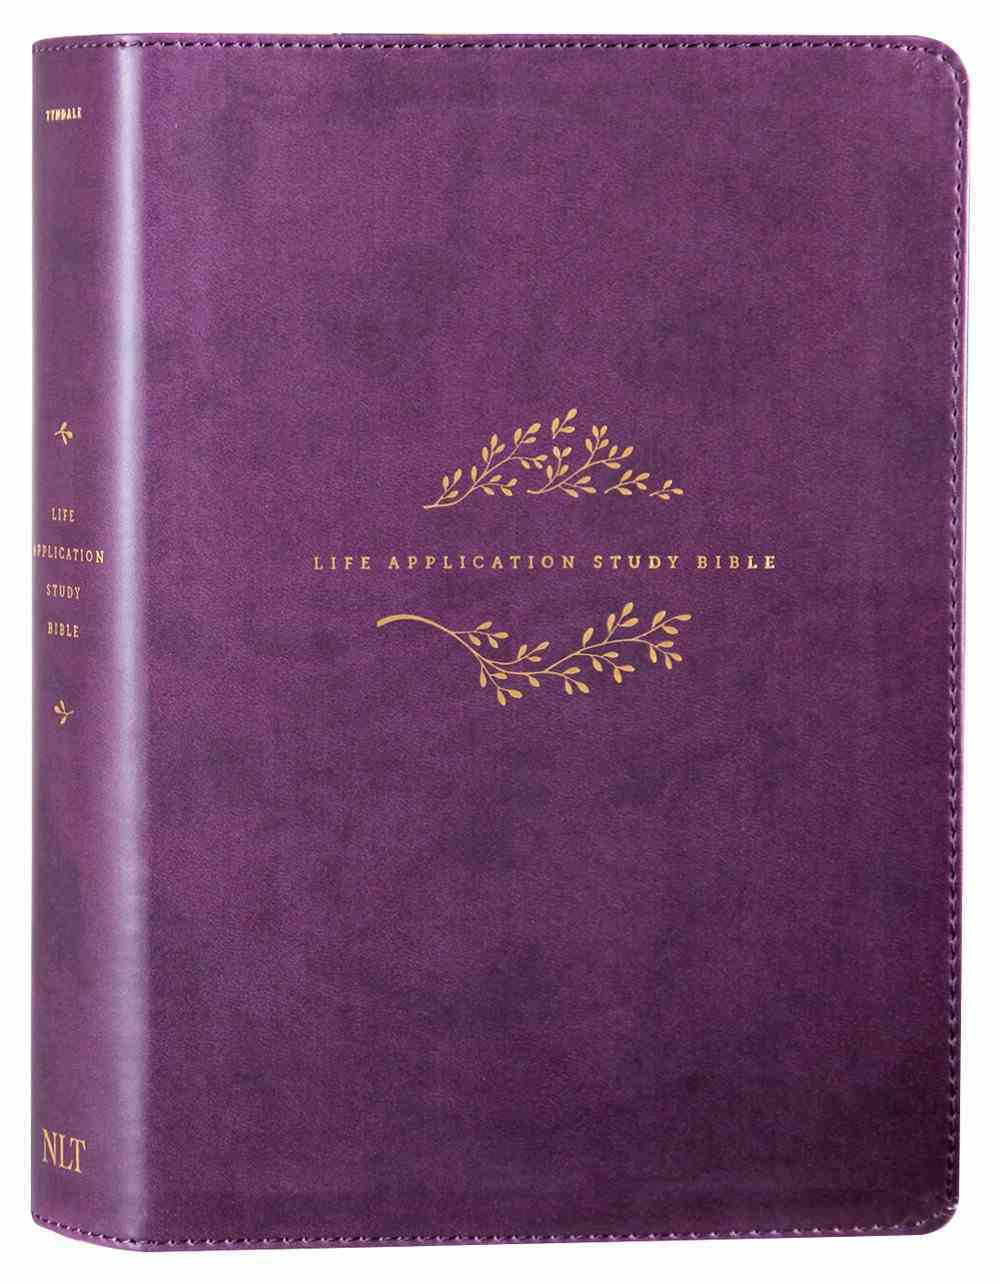 NLT Life Application Study Bible Purple (Red Letter Edition) (3rd Edition) Imitation Leather